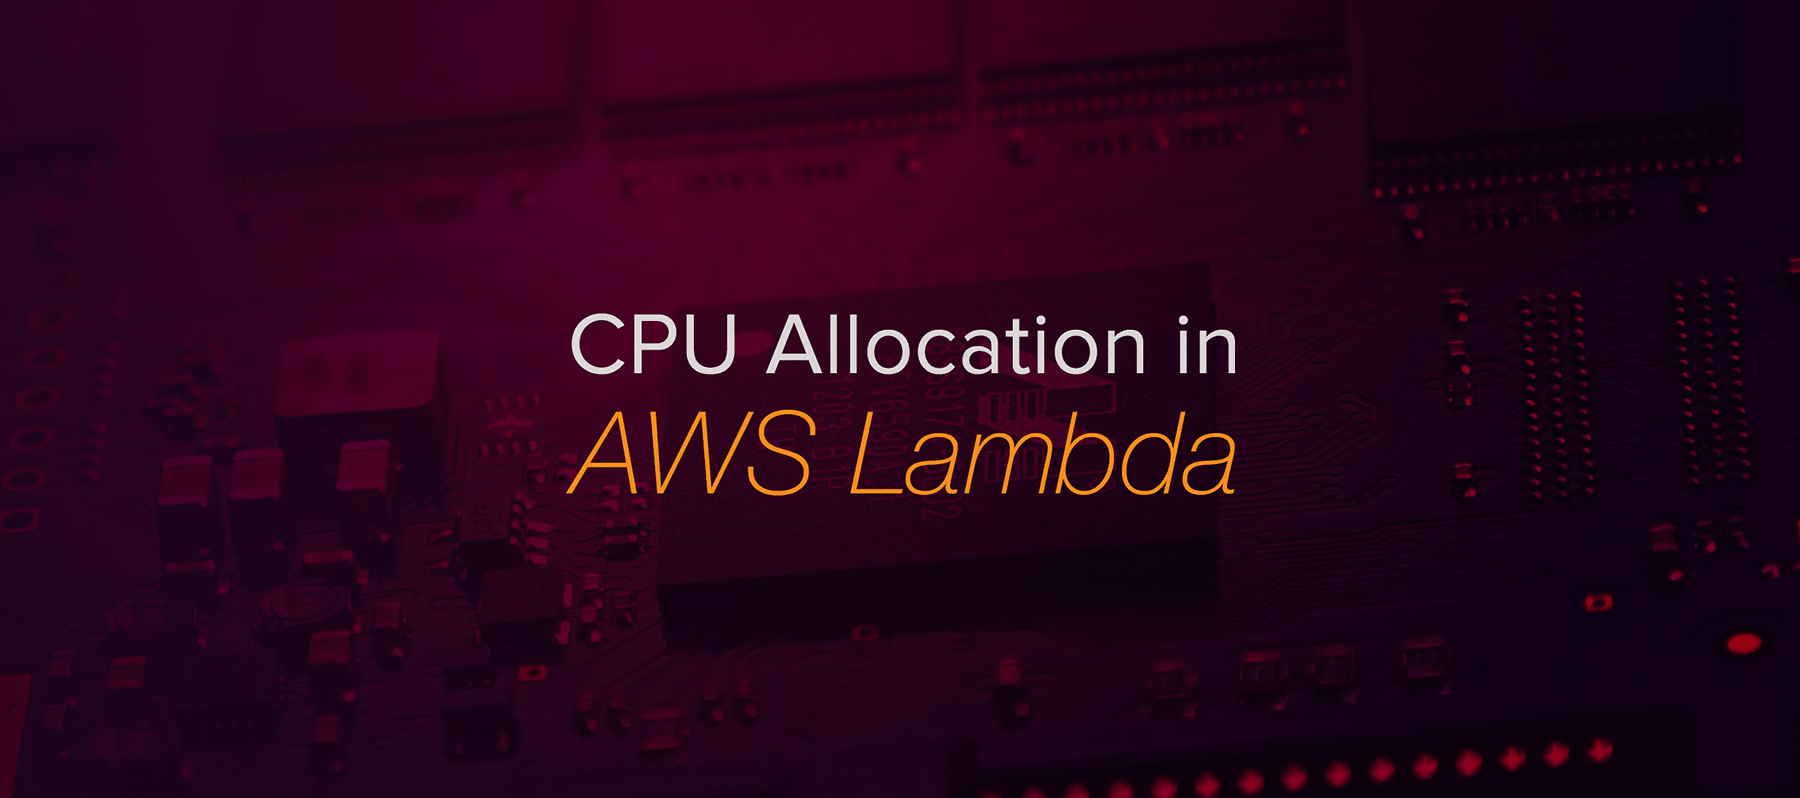 How does proportional CPU allocation work with AWS Lambda?